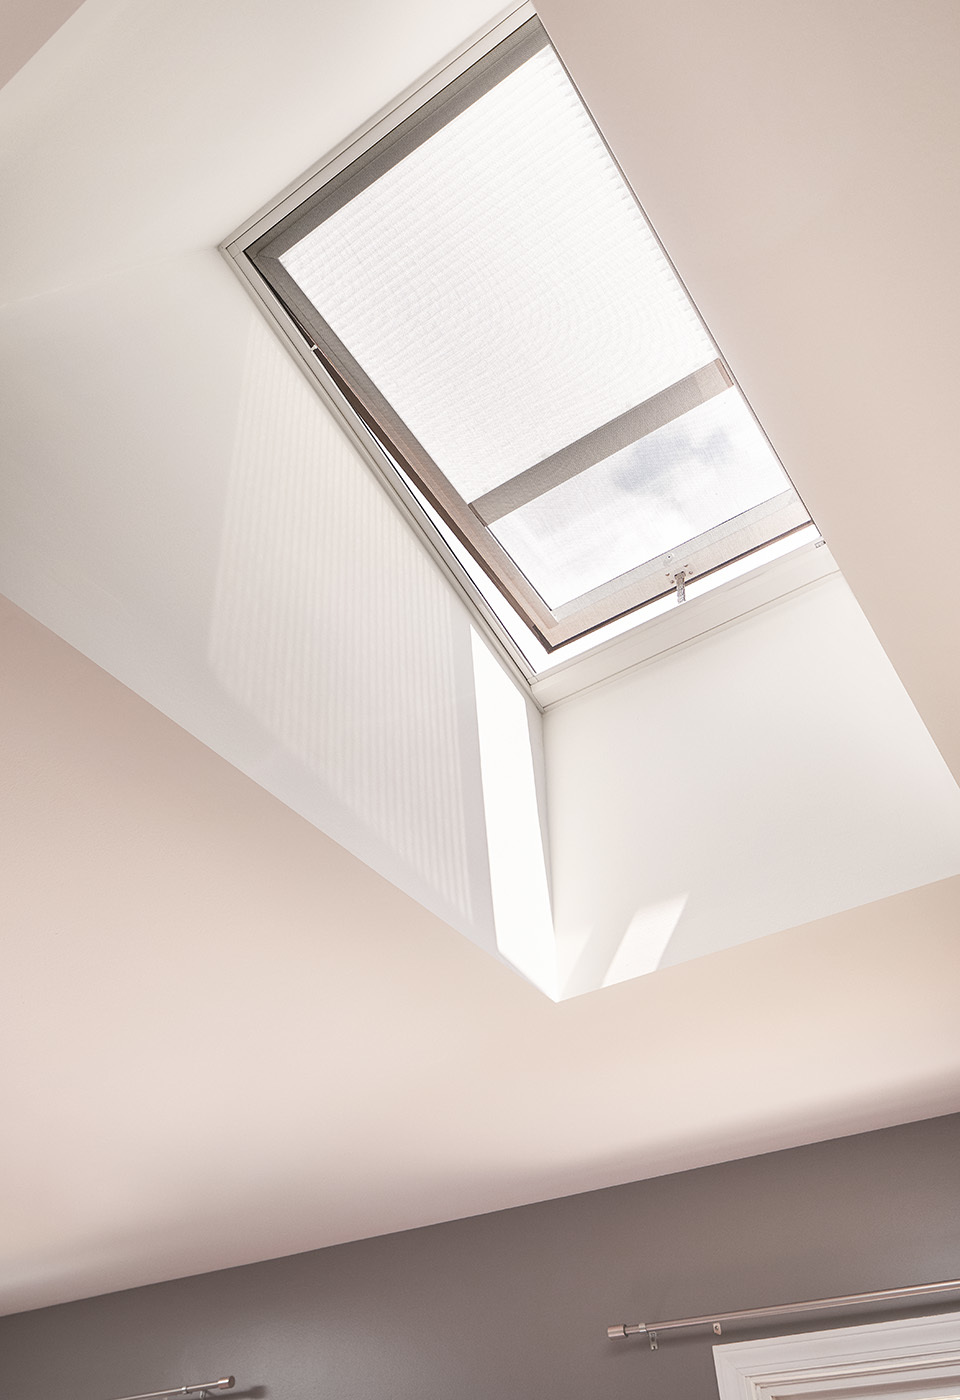 Skylight-Detail-Main_BlindsThirdOpenresized.jpg#asset:2195